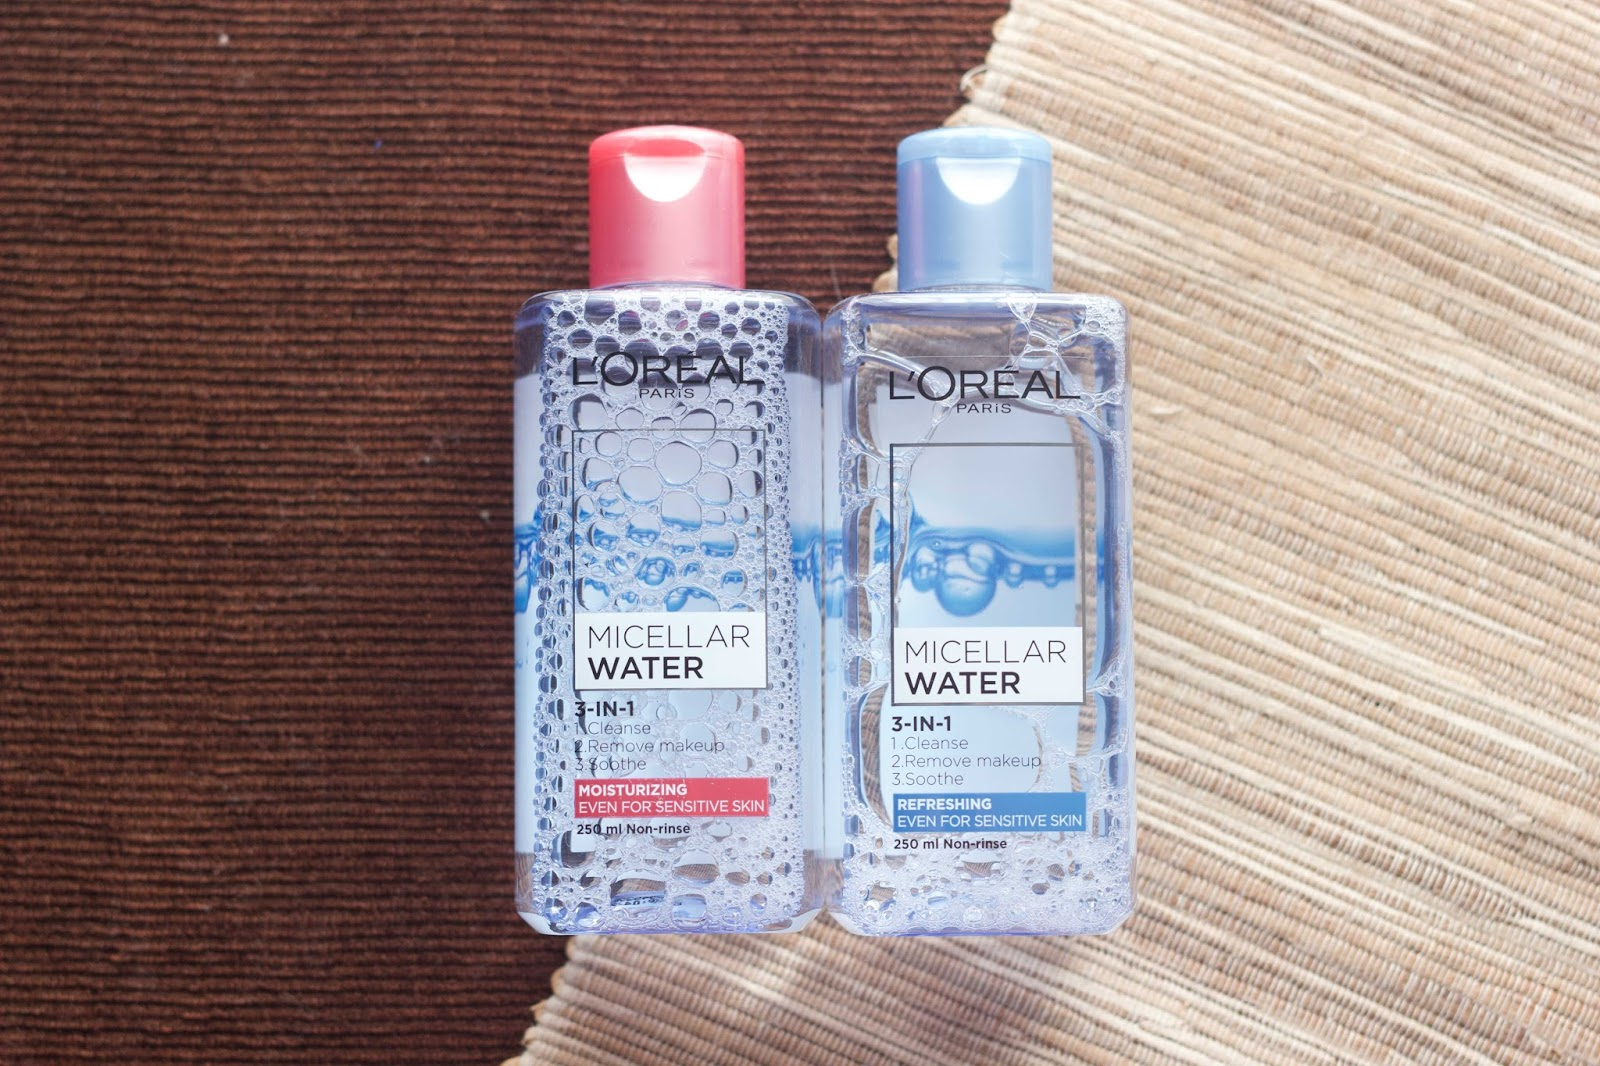 This Is Real And Me Review Loreal Paris Micellar Water L Oreal Makeup 250ml Blue